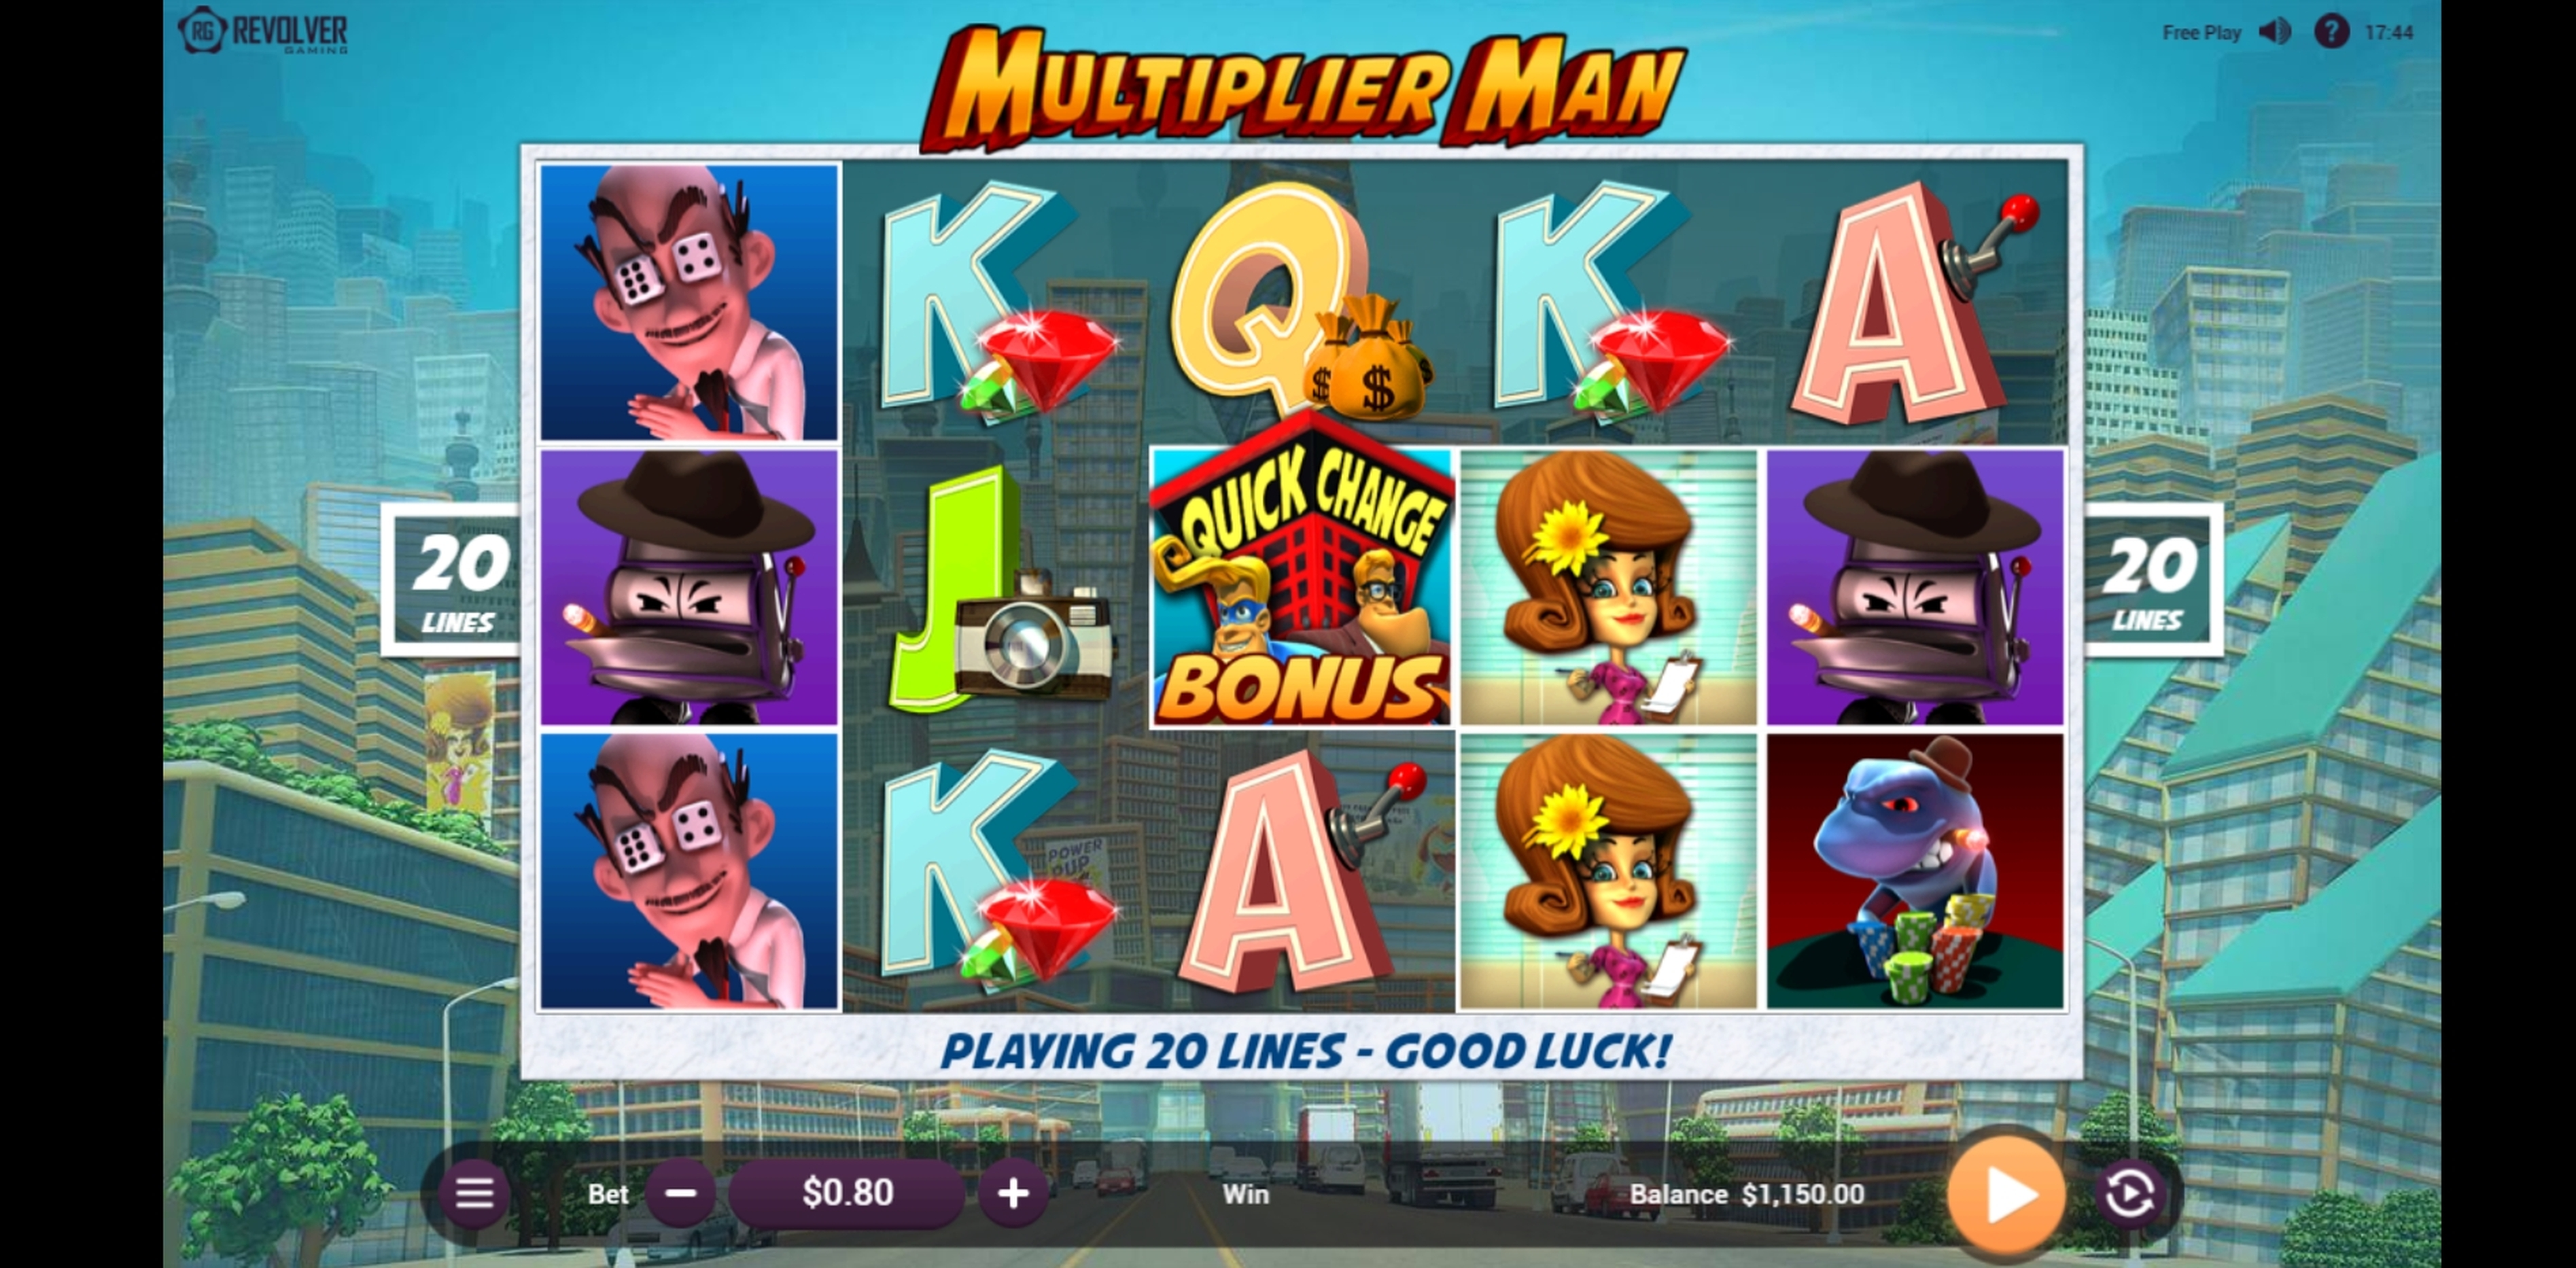 Reels in Multiplier Man Slot Game by Revolver Gaming